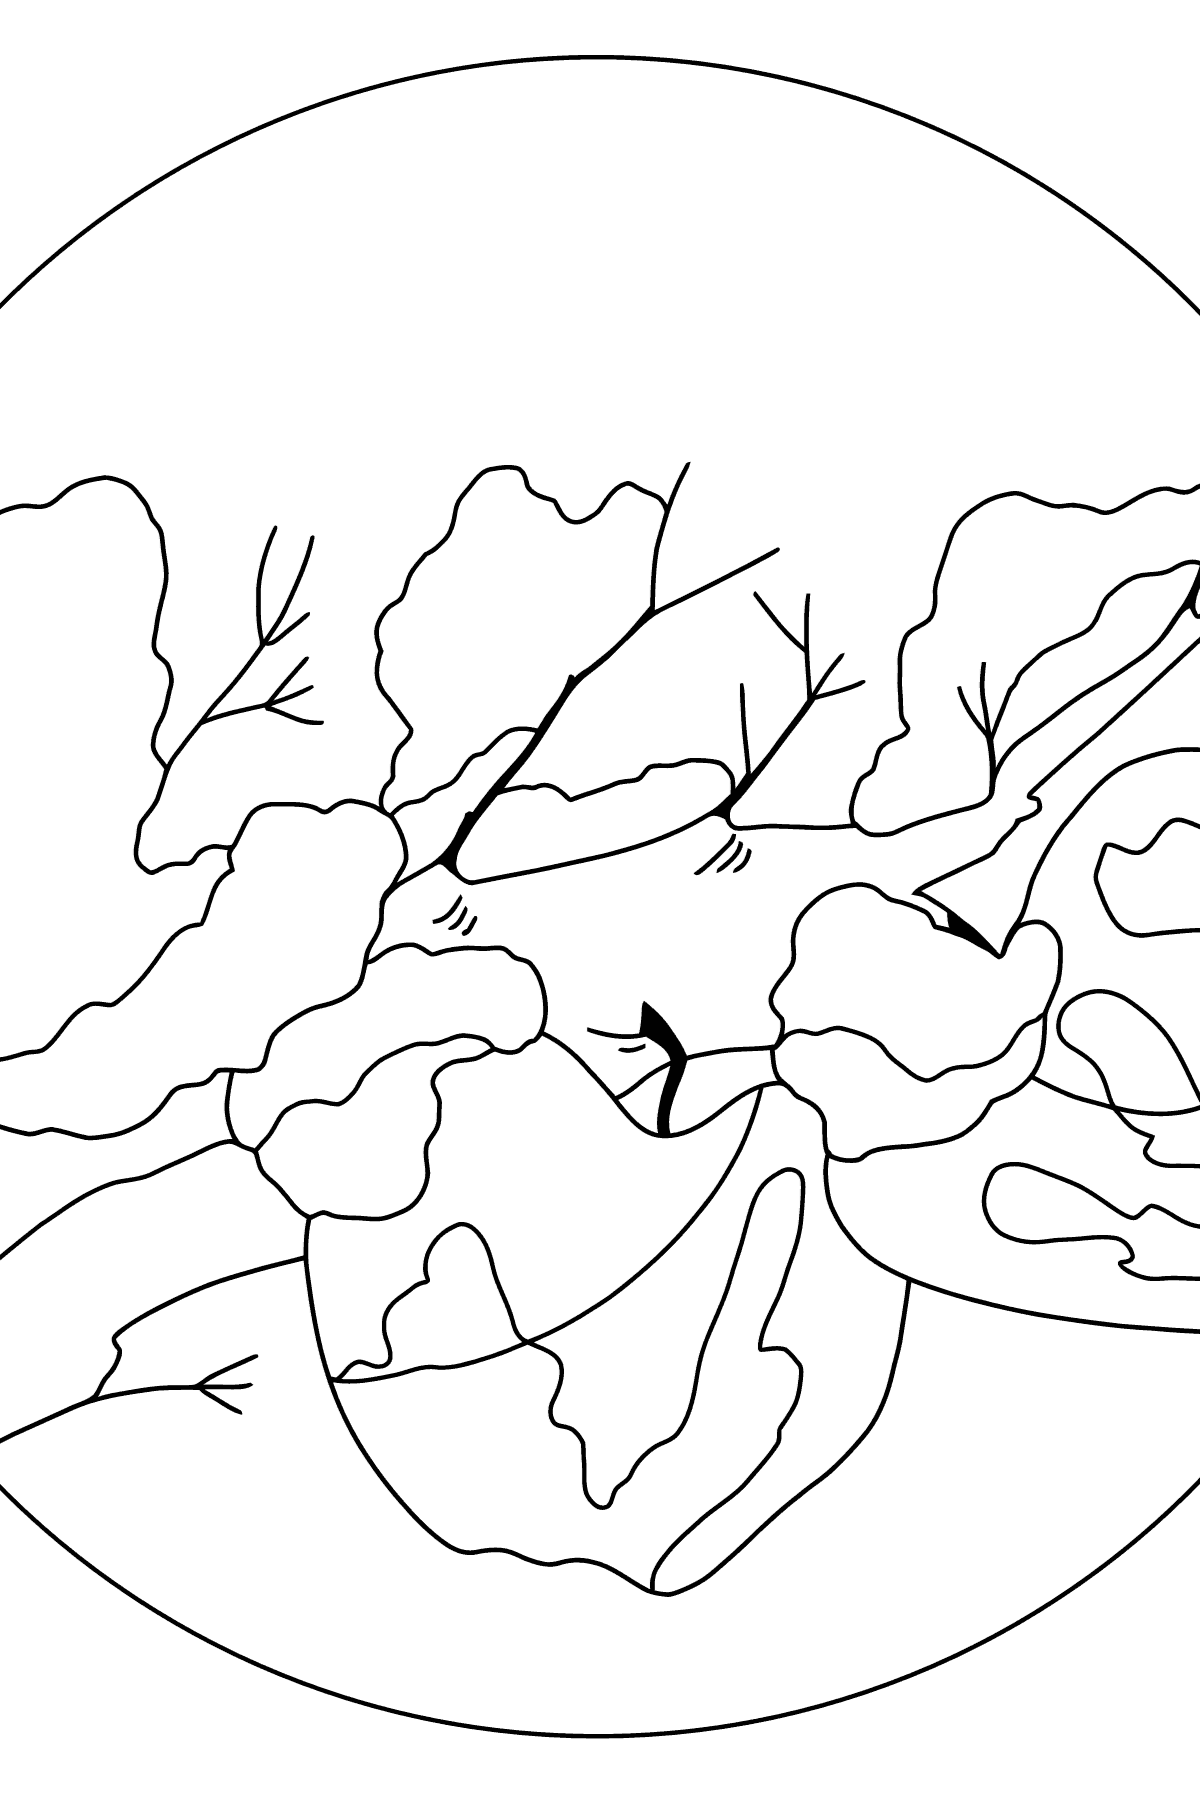 Winter Coloring Page - How Apples Hid in the Snow for Children